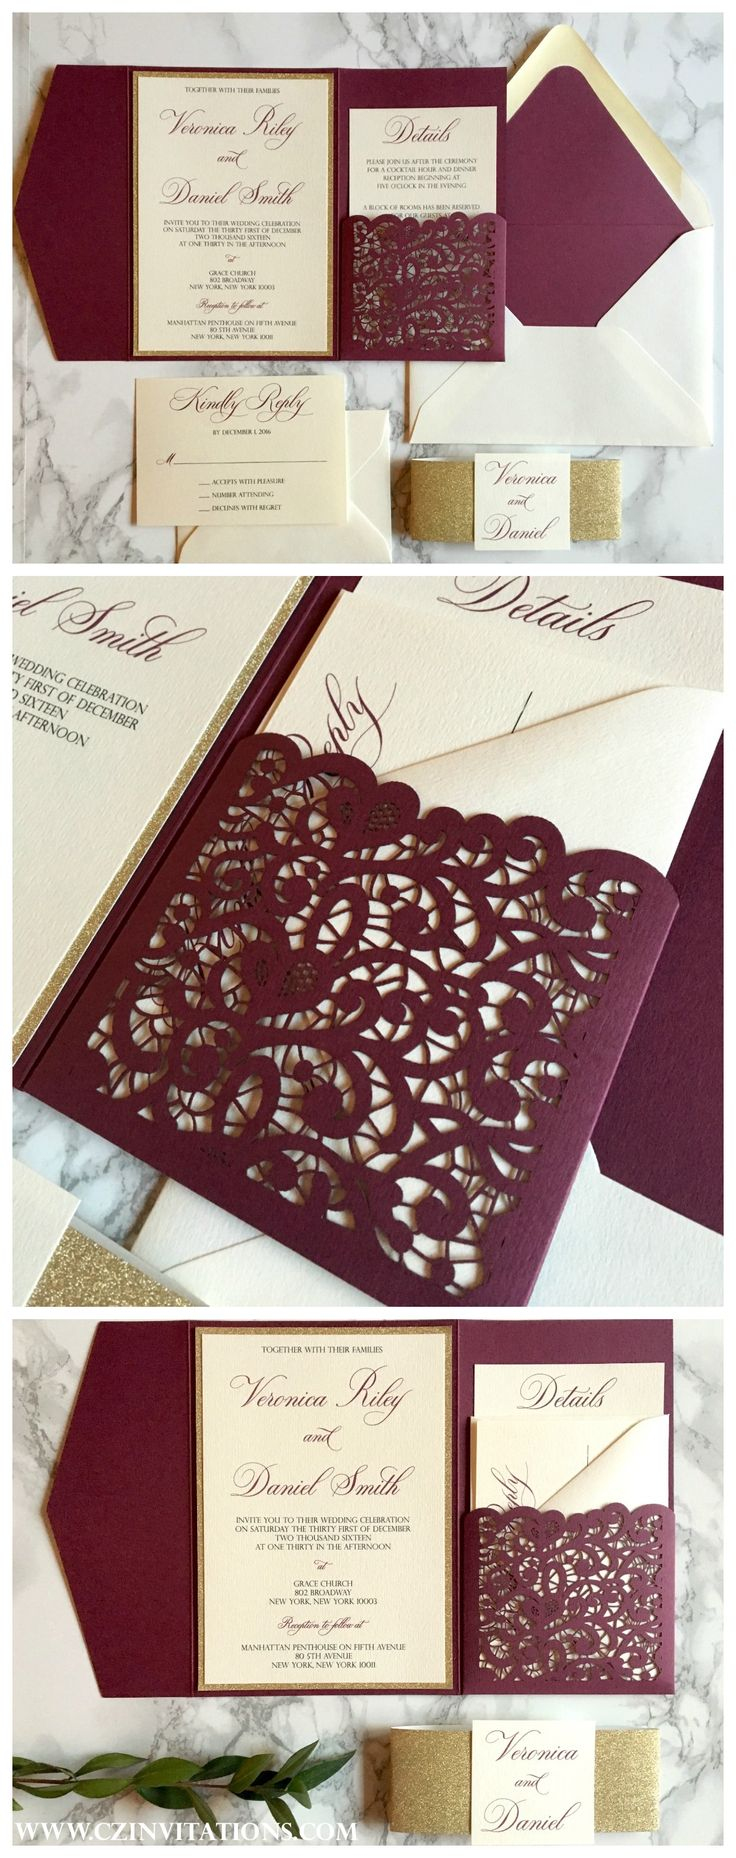 We love this Lace Laser cut design on the burgundy pocket Such an elegant wedding Weding Invitation